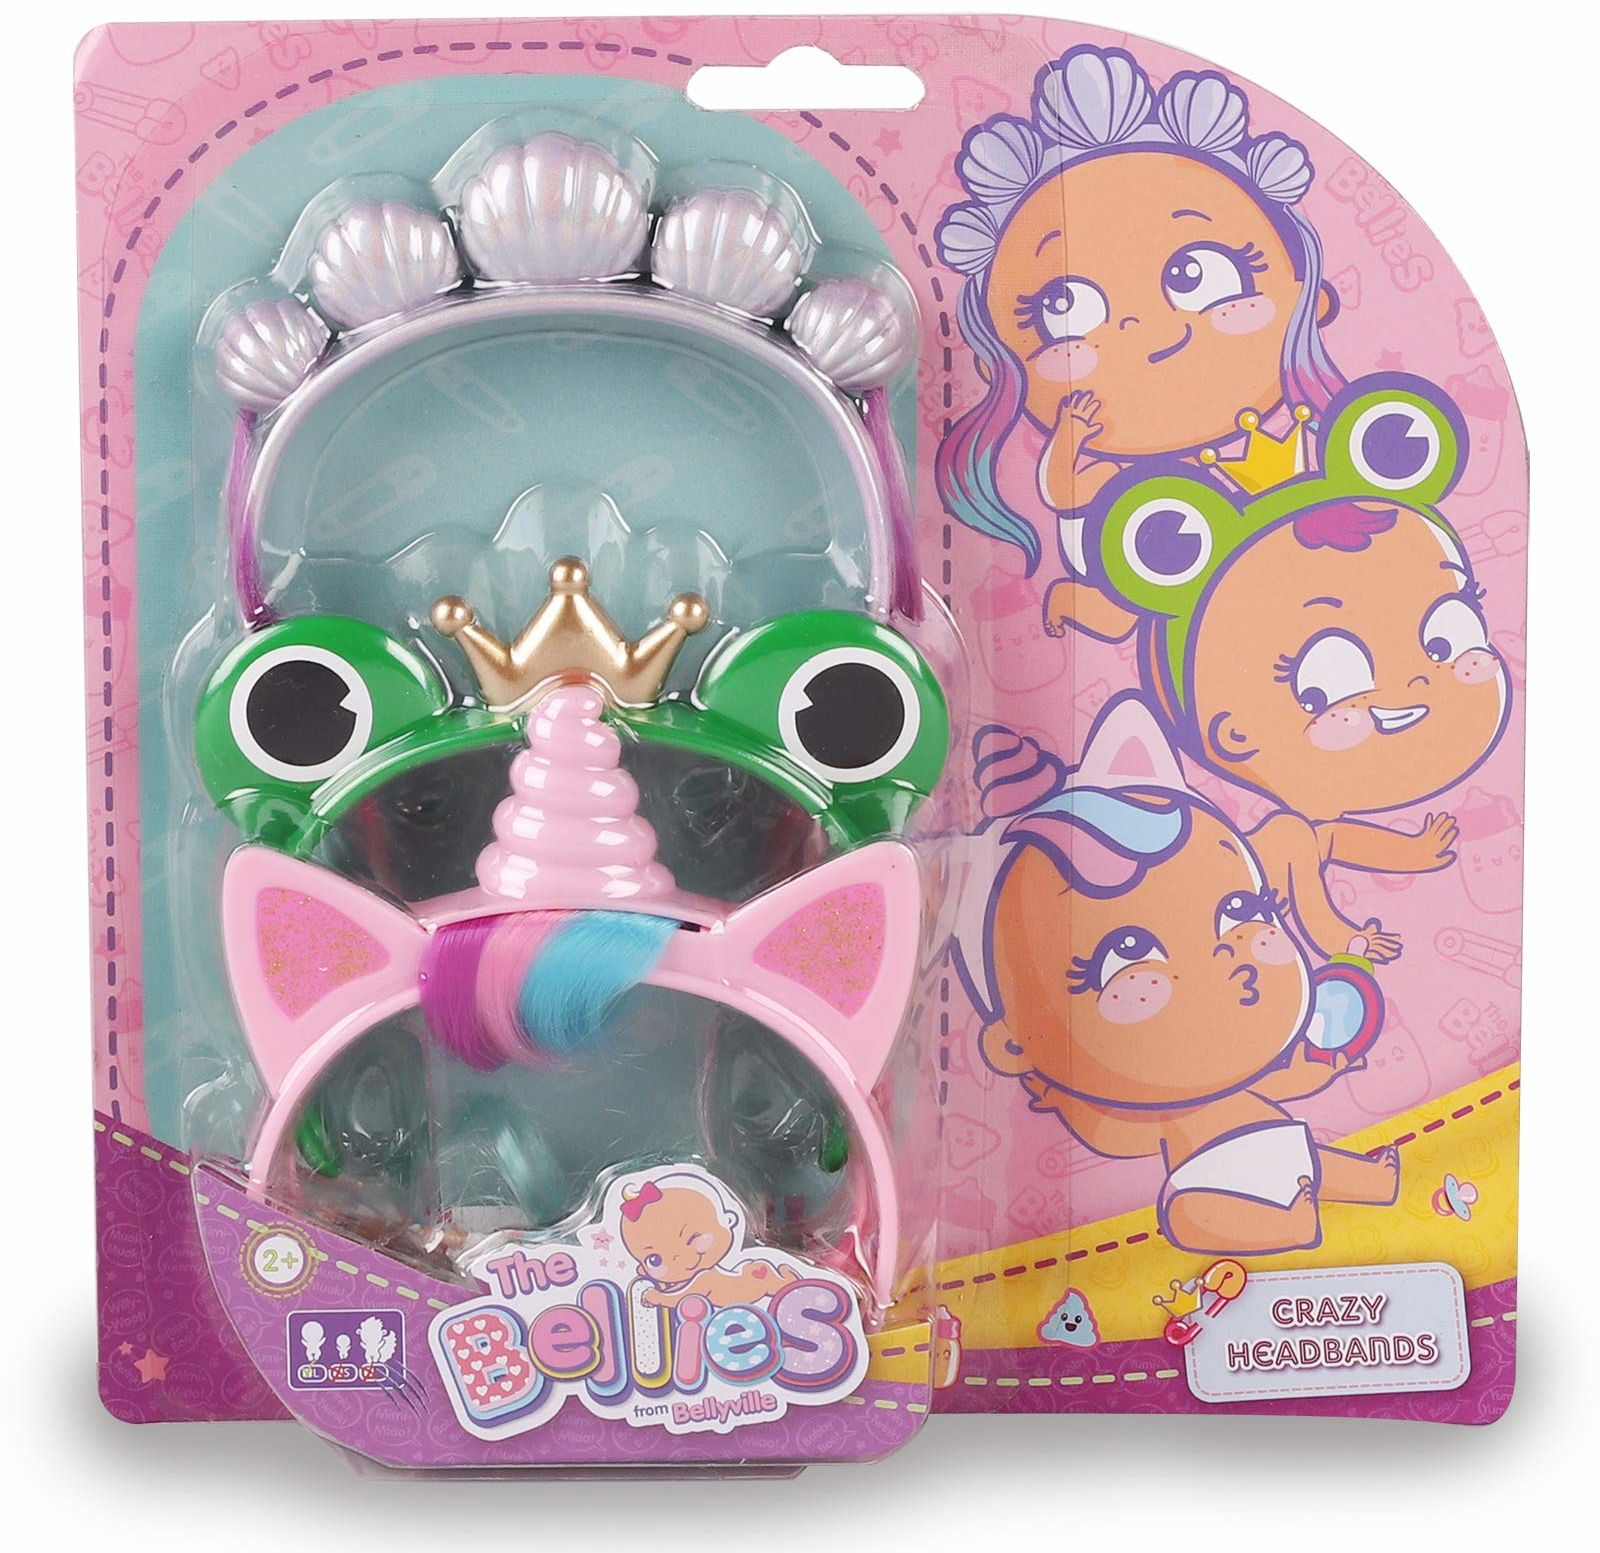 The Bellies from Bellyville 700016269 Baby doll Accessory